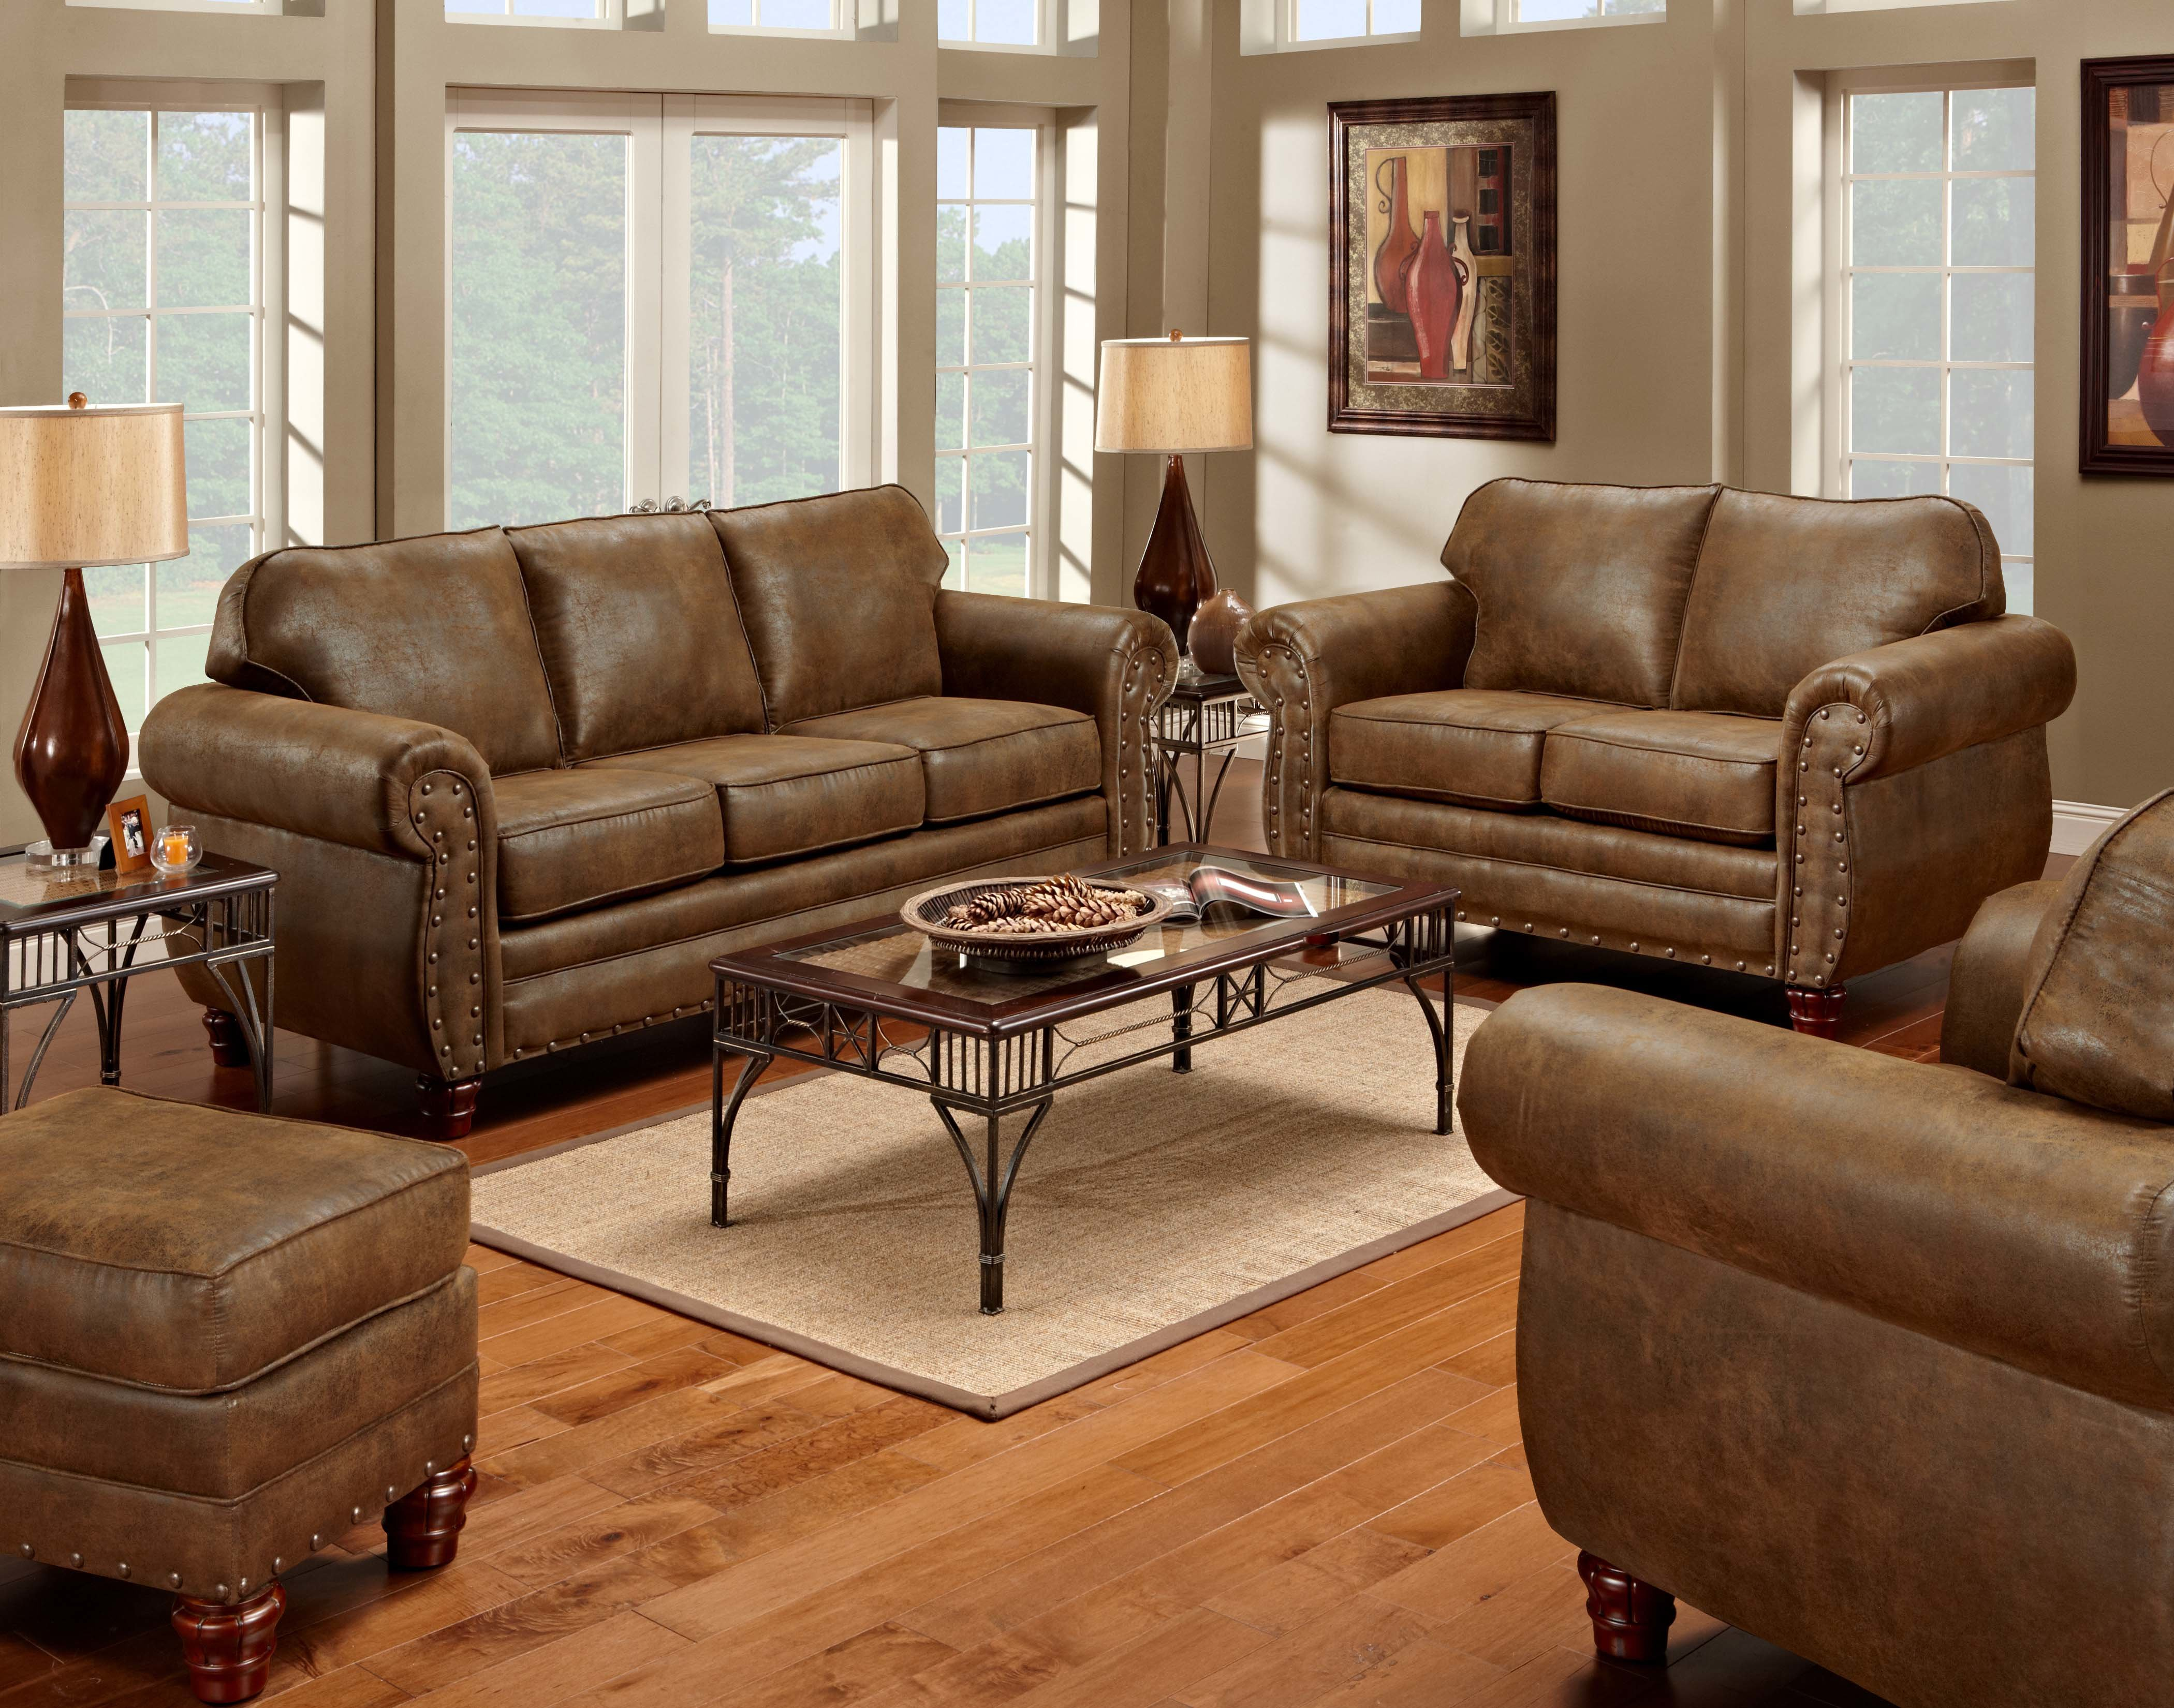 American Furniture Classics Sedona Sleeper 4 Piece Living Room Set in 12 Smart Ideas How to Improve Microfiber Living Room Sets